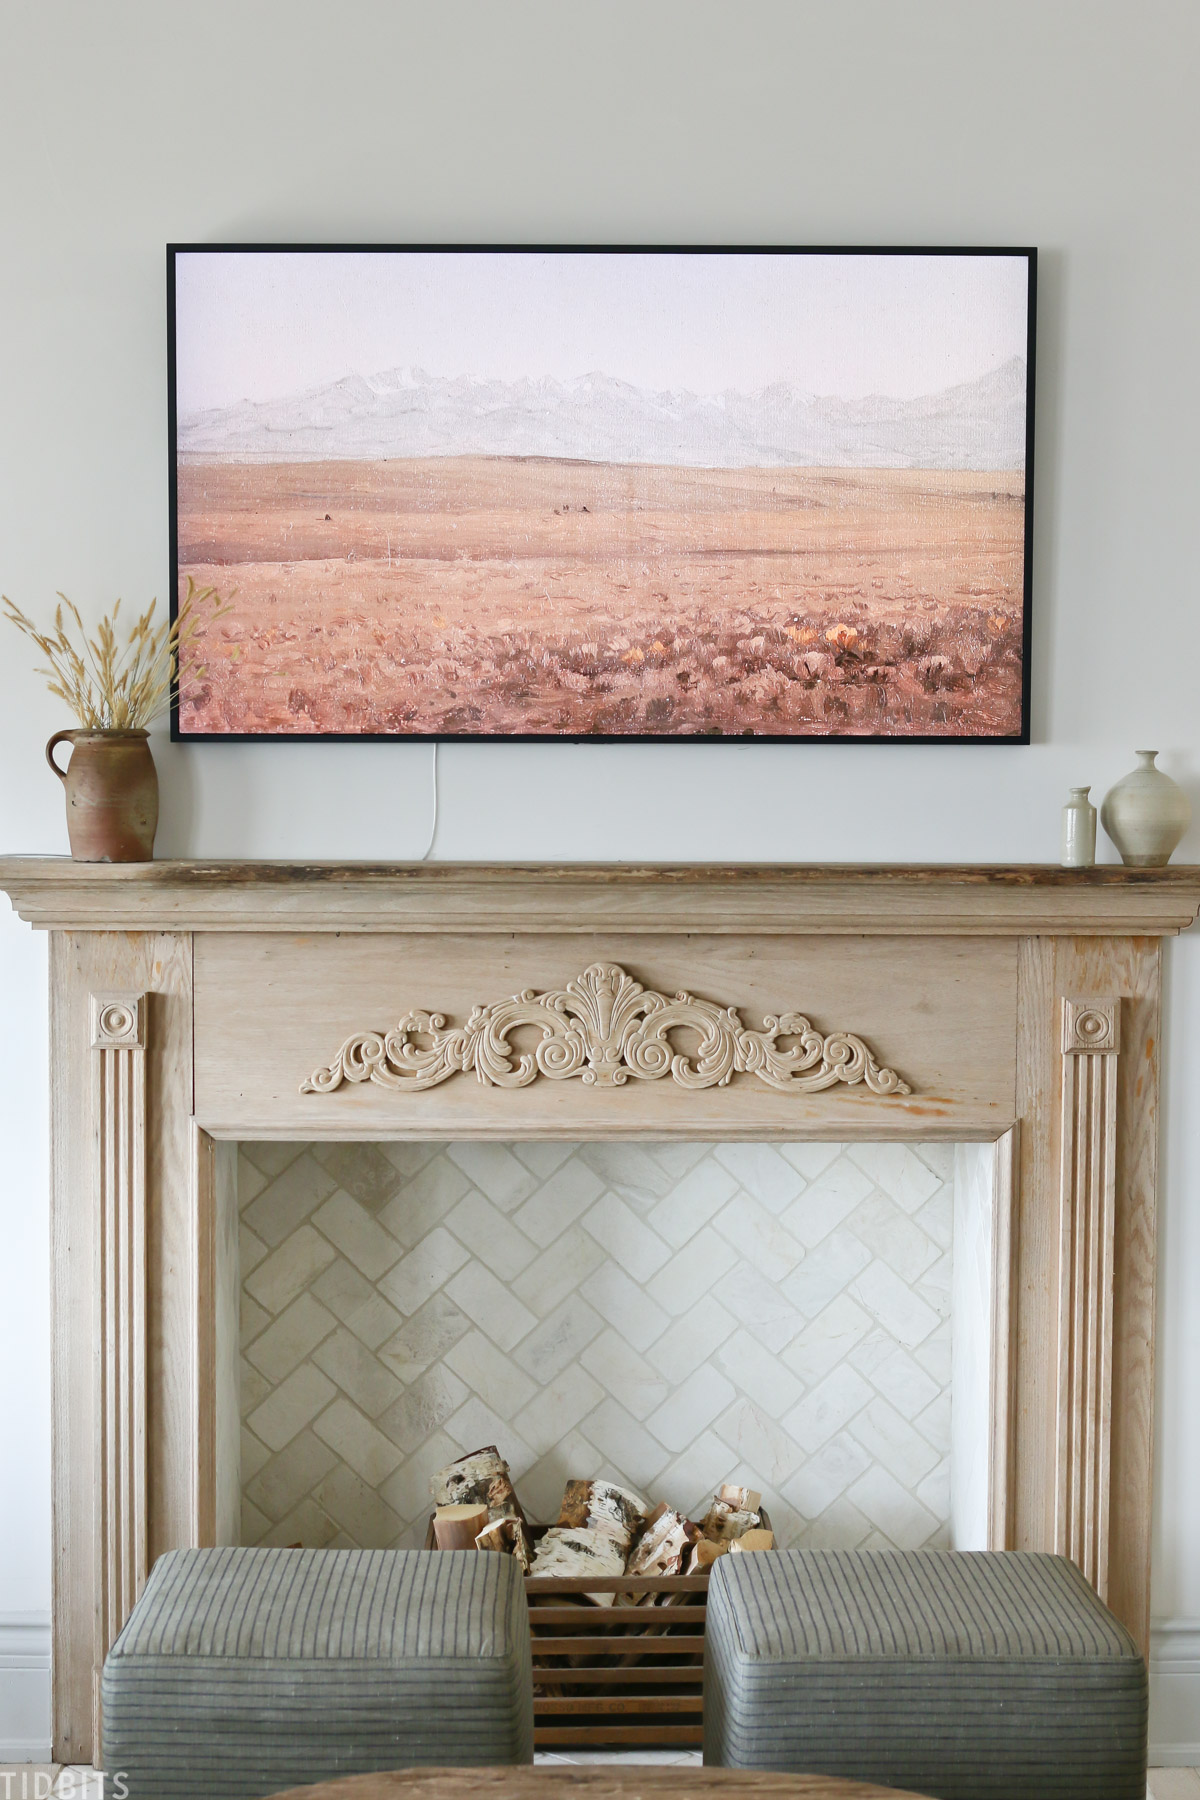 faux fireplace mantel with wood placed inside fireplace and Samsung TV above mantel